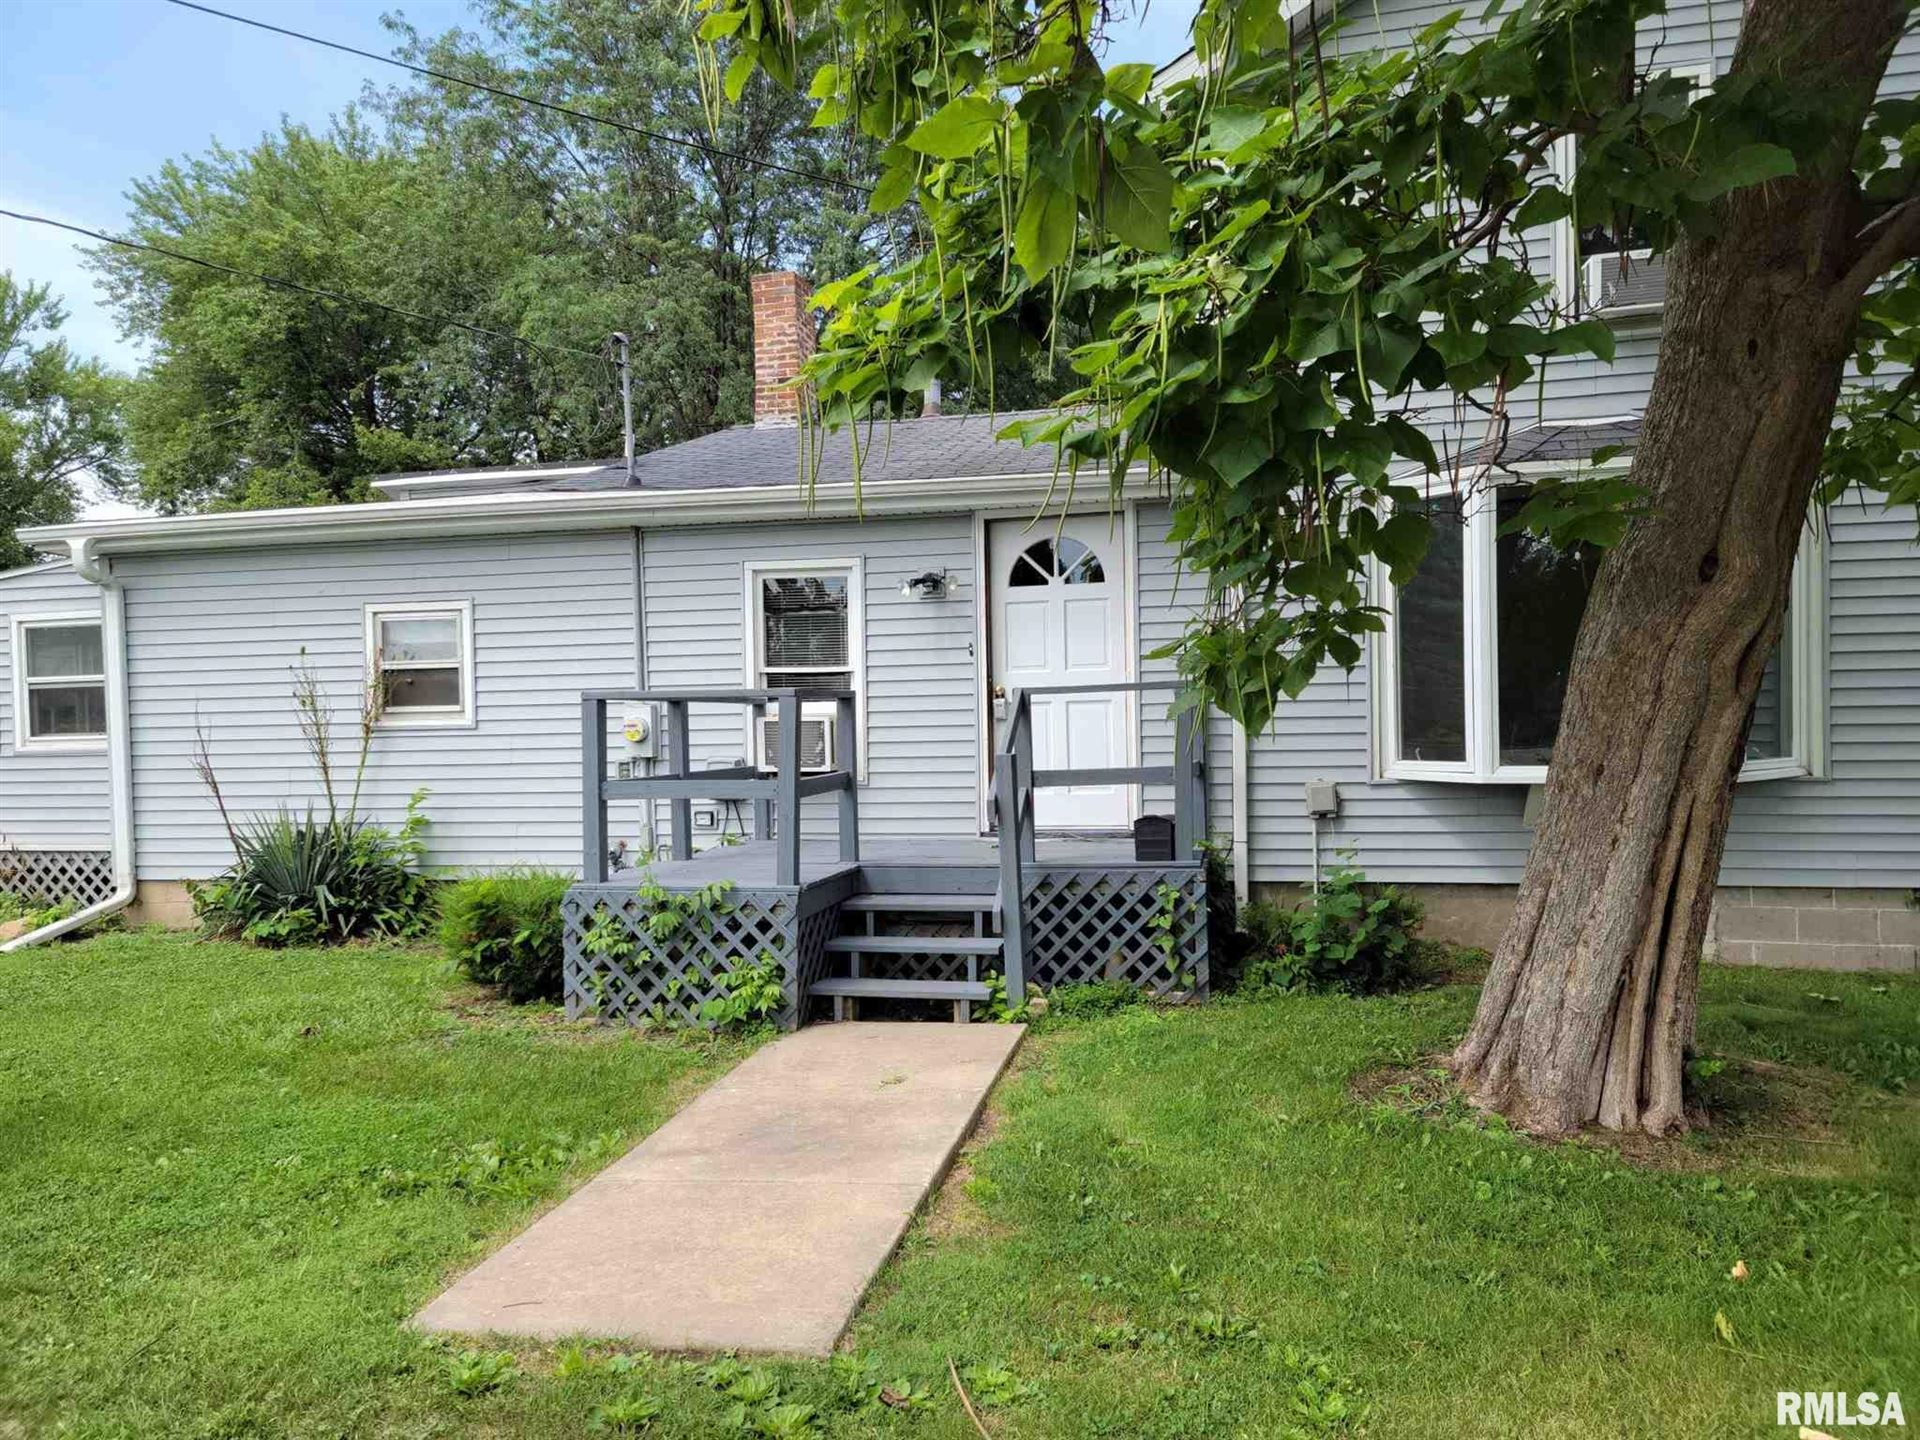 503 N 3RD, Chillicothe, IL 61523 - #: PA1227771